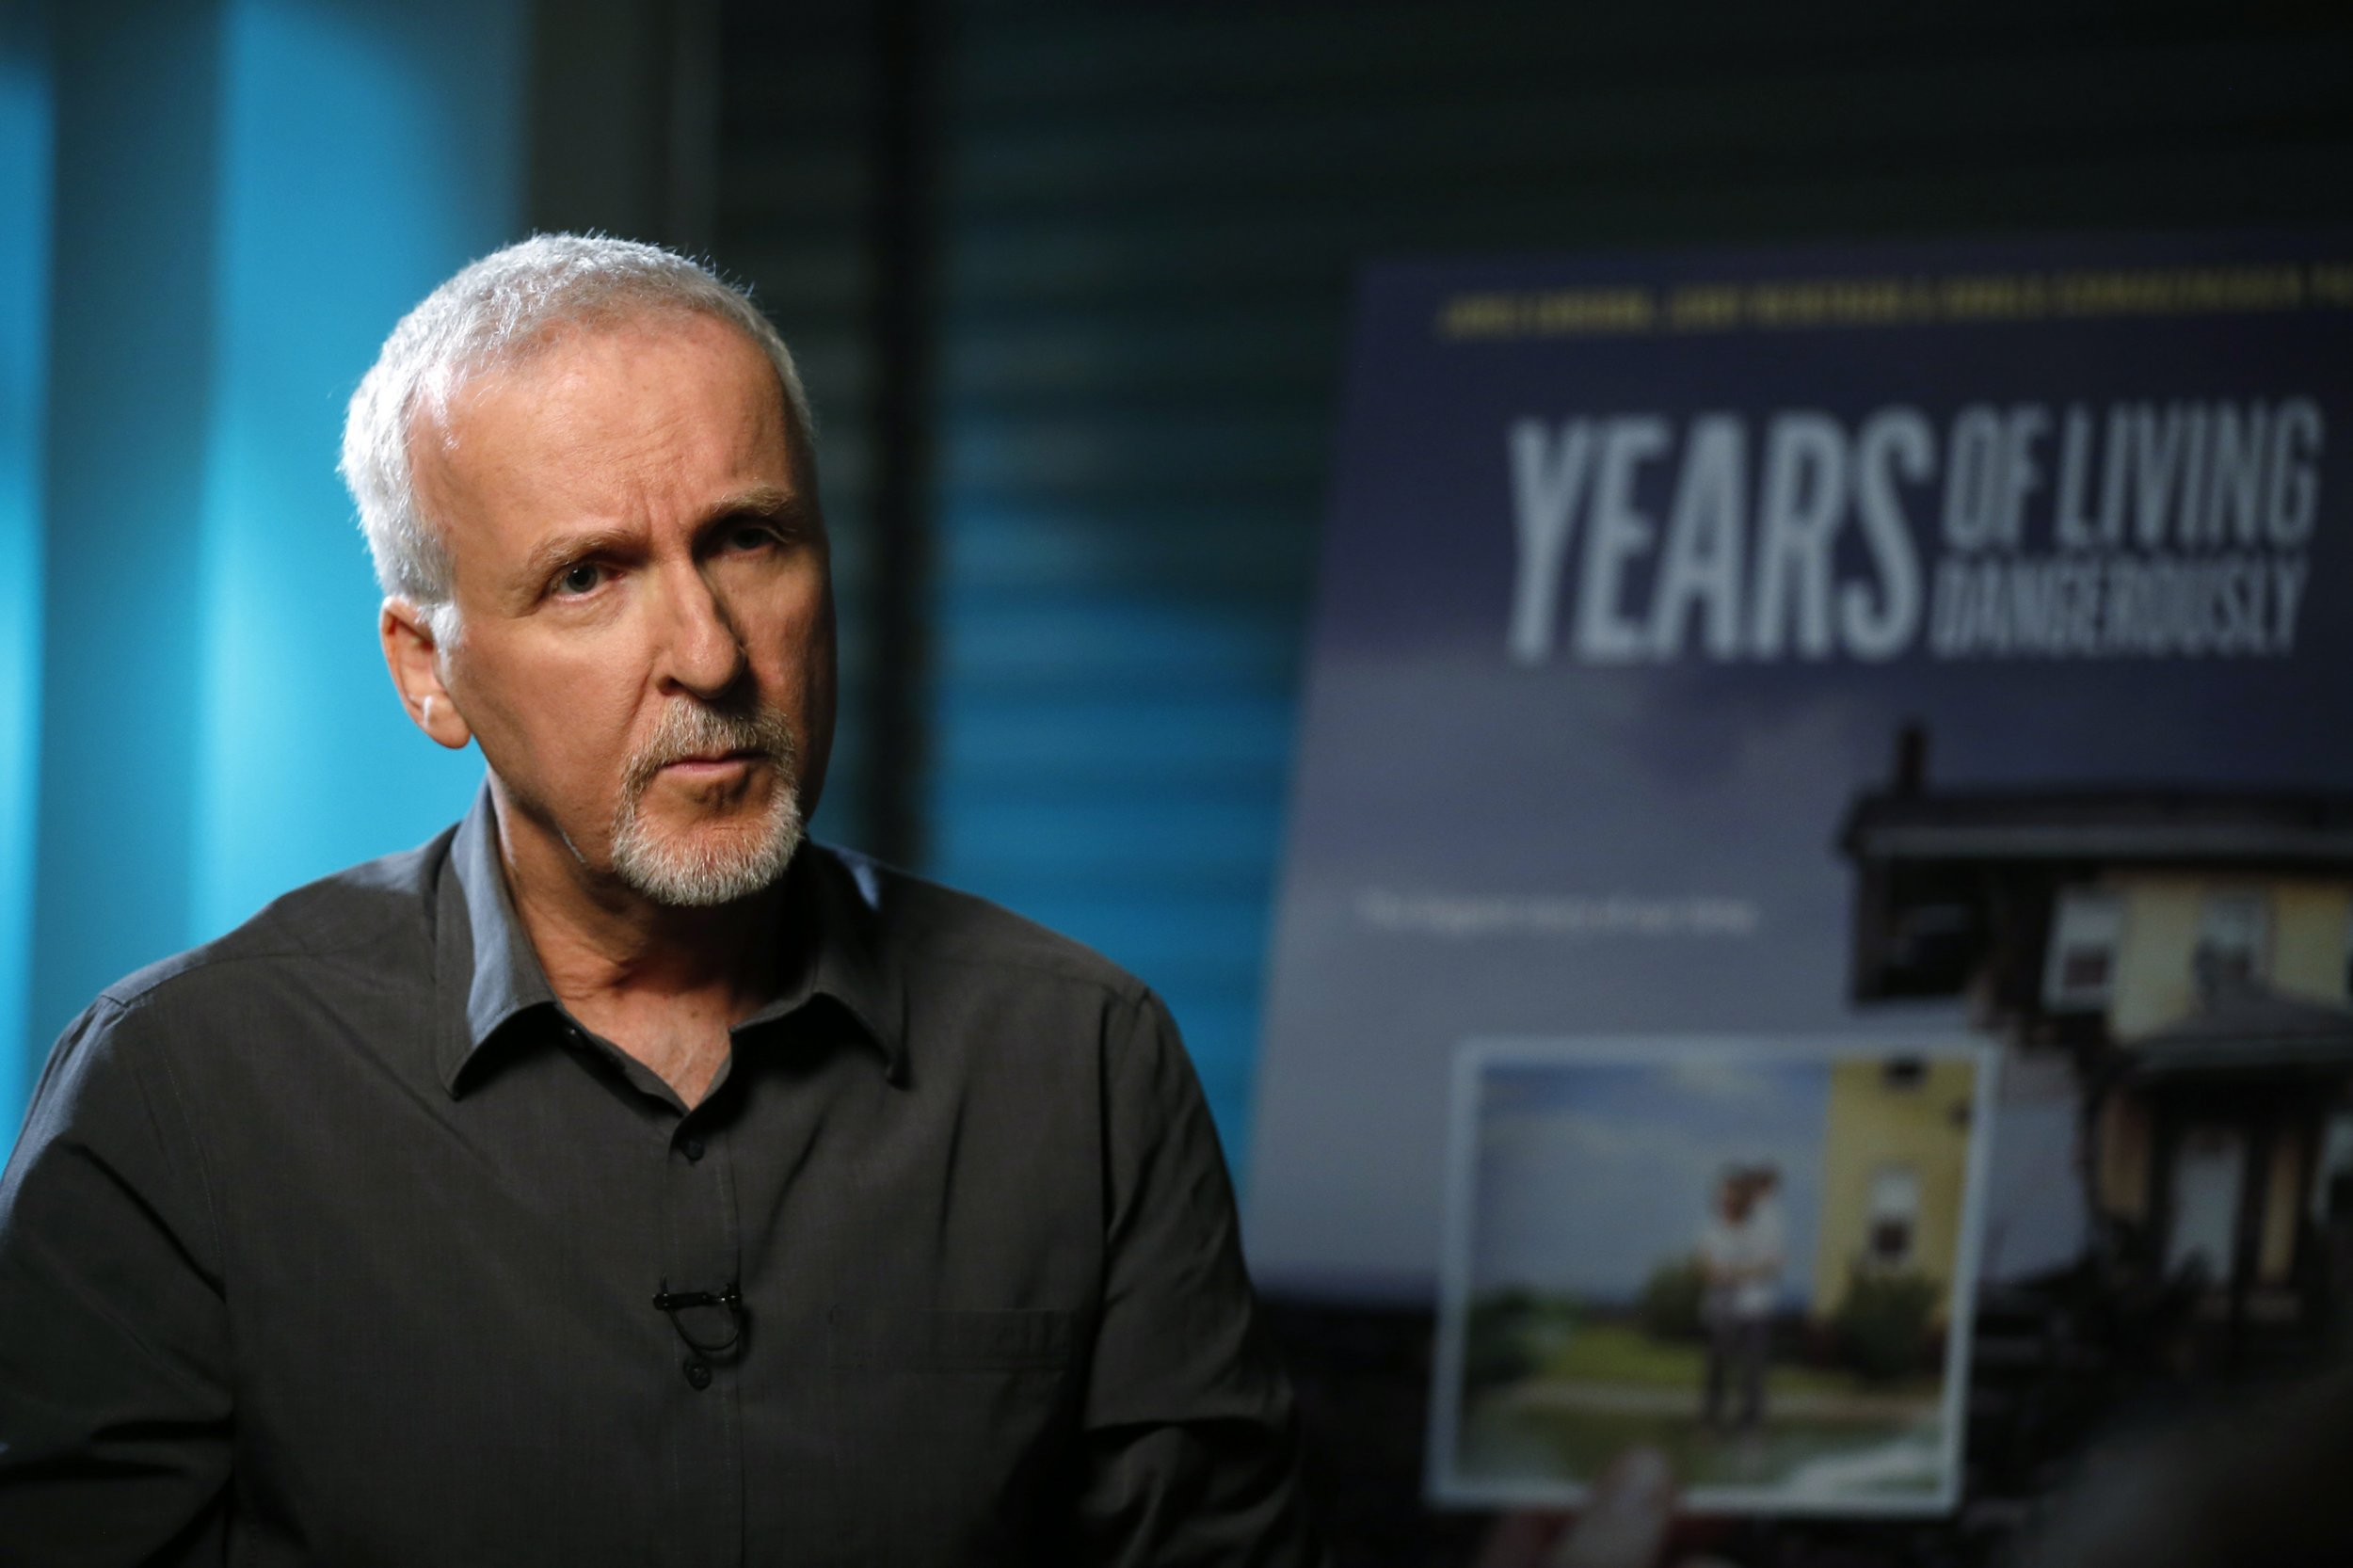 James Cameron: Explorer, director and climate change activist